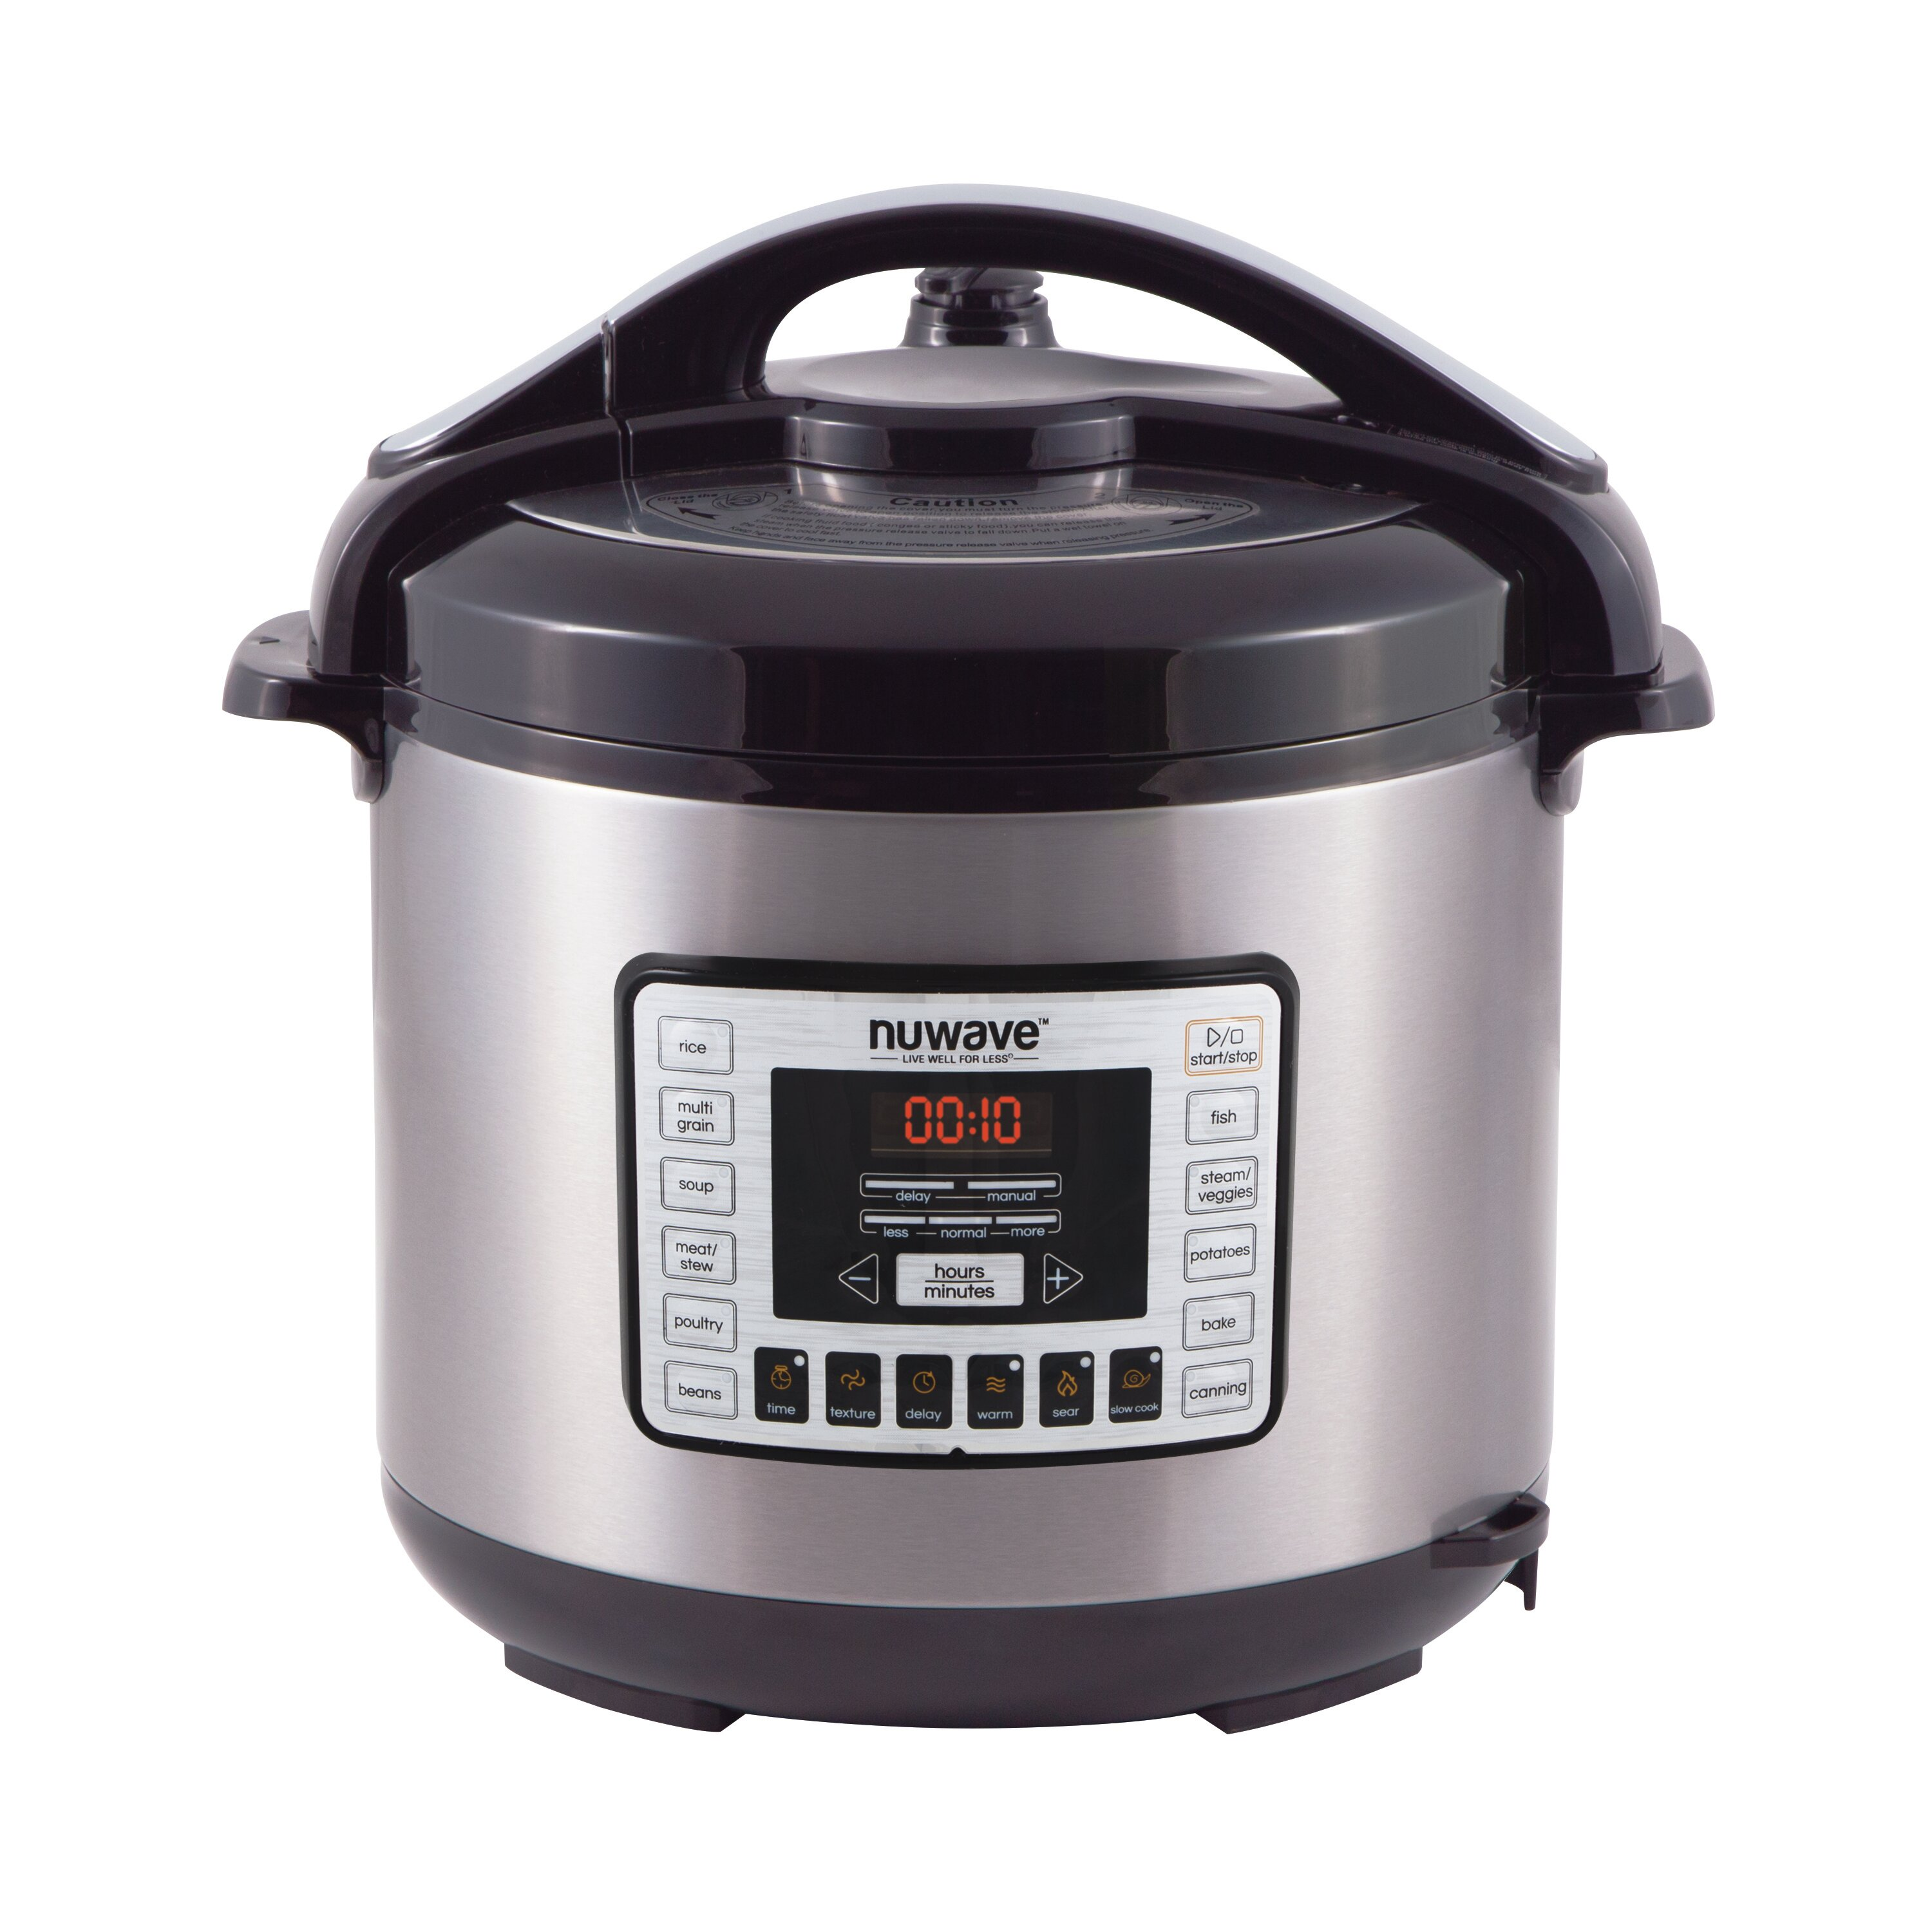 NuWave 8 Qt Electric Pressure Cooker Reviews